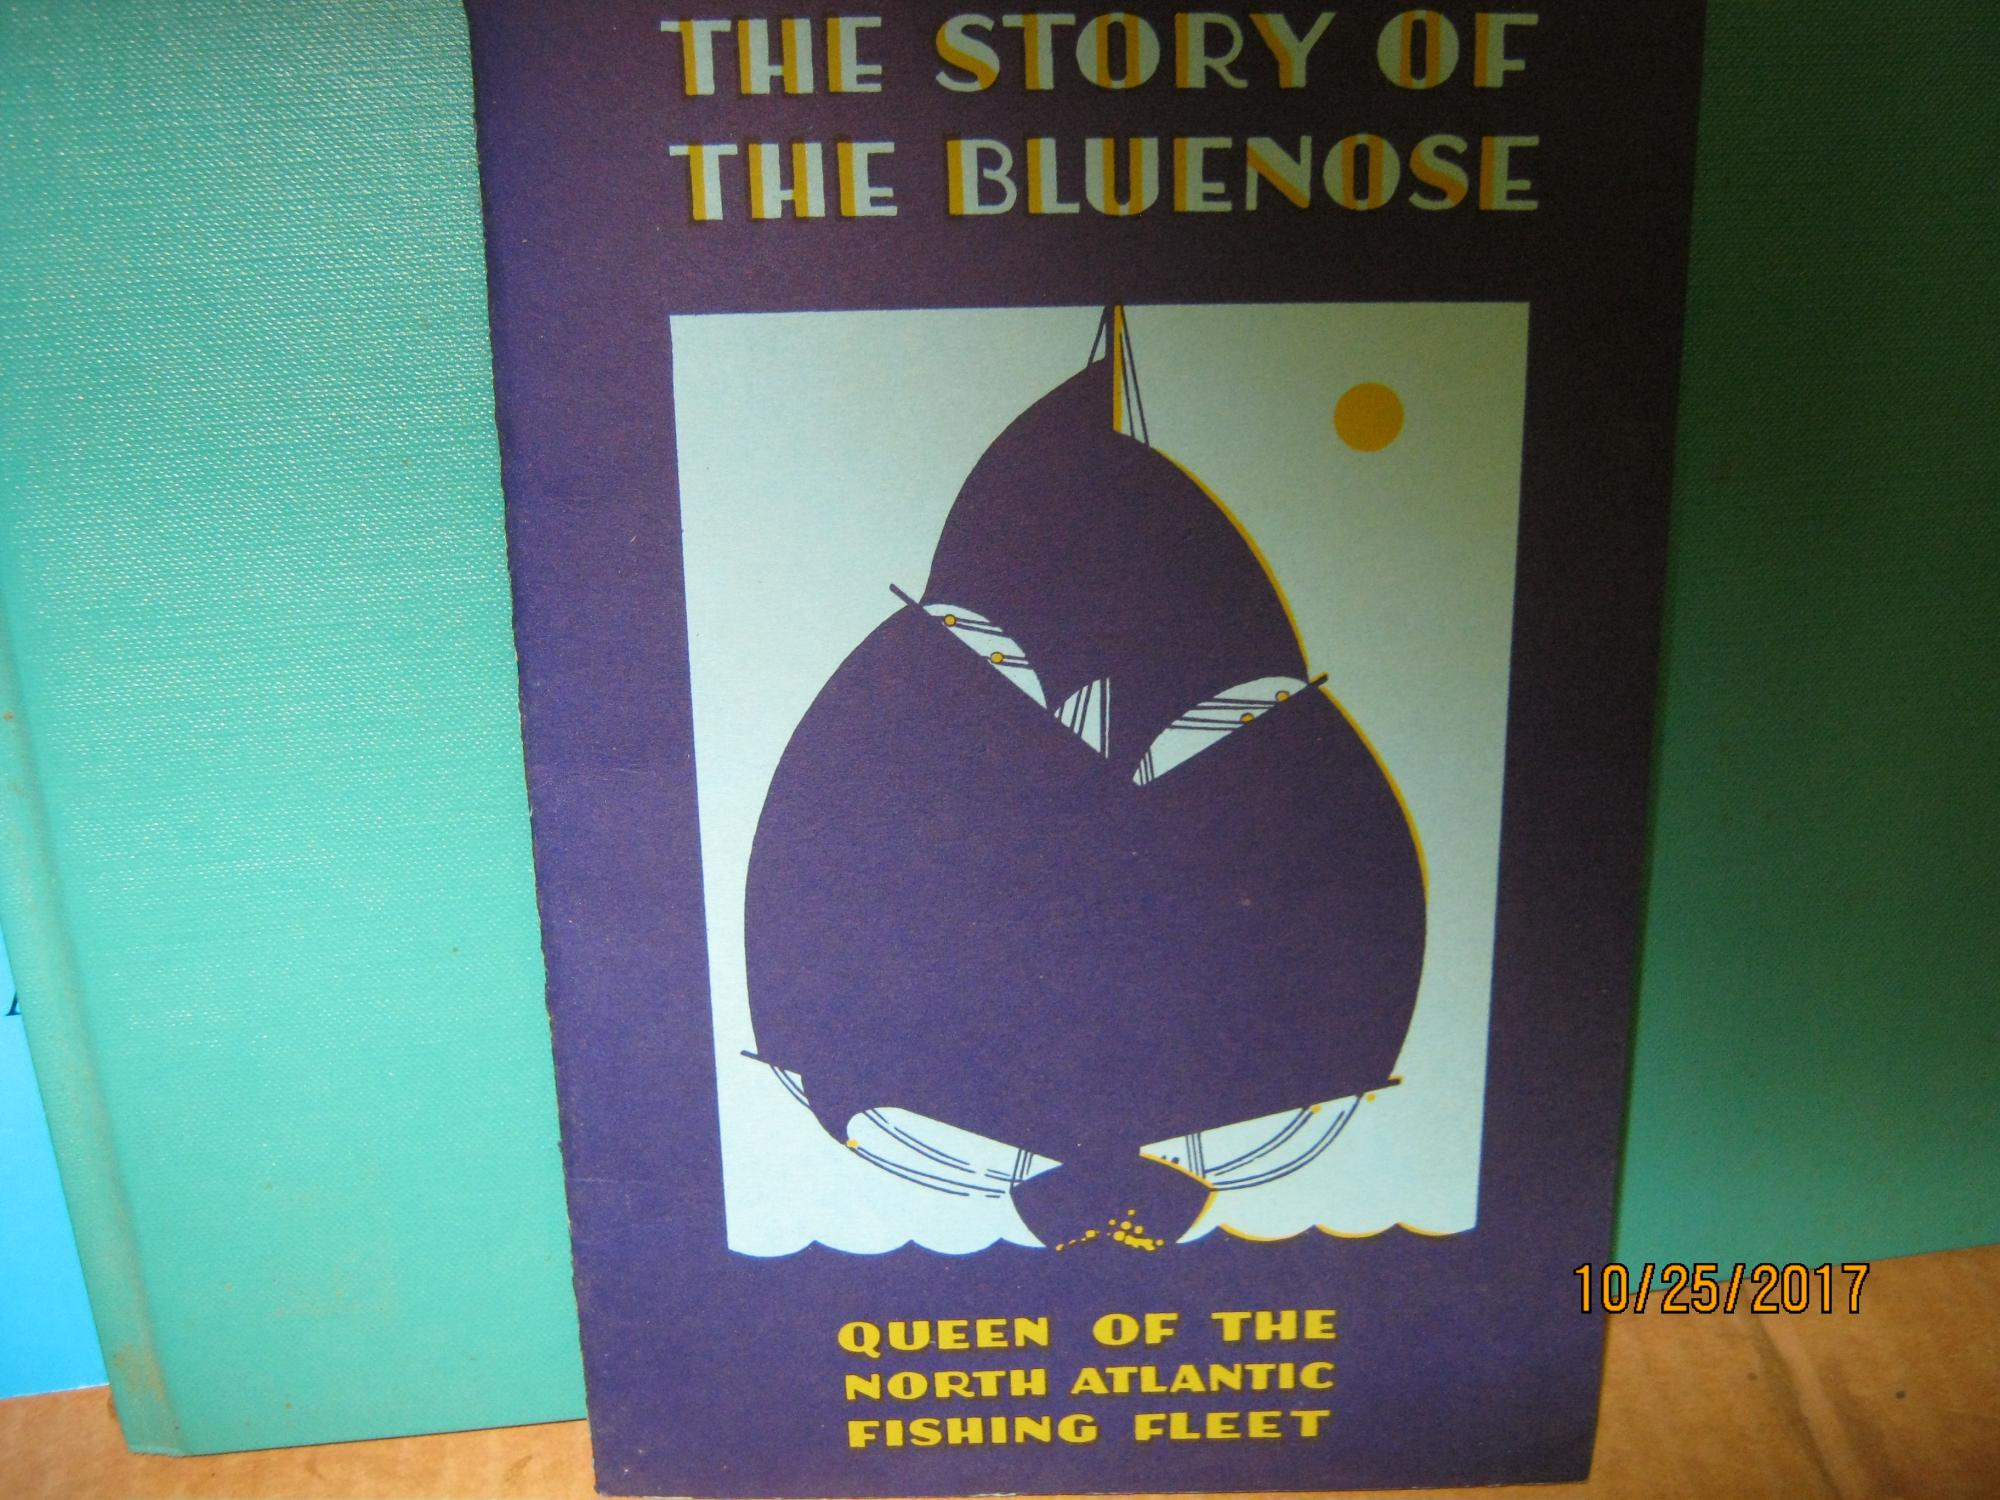 The Story of the Bluenose Queen of the North